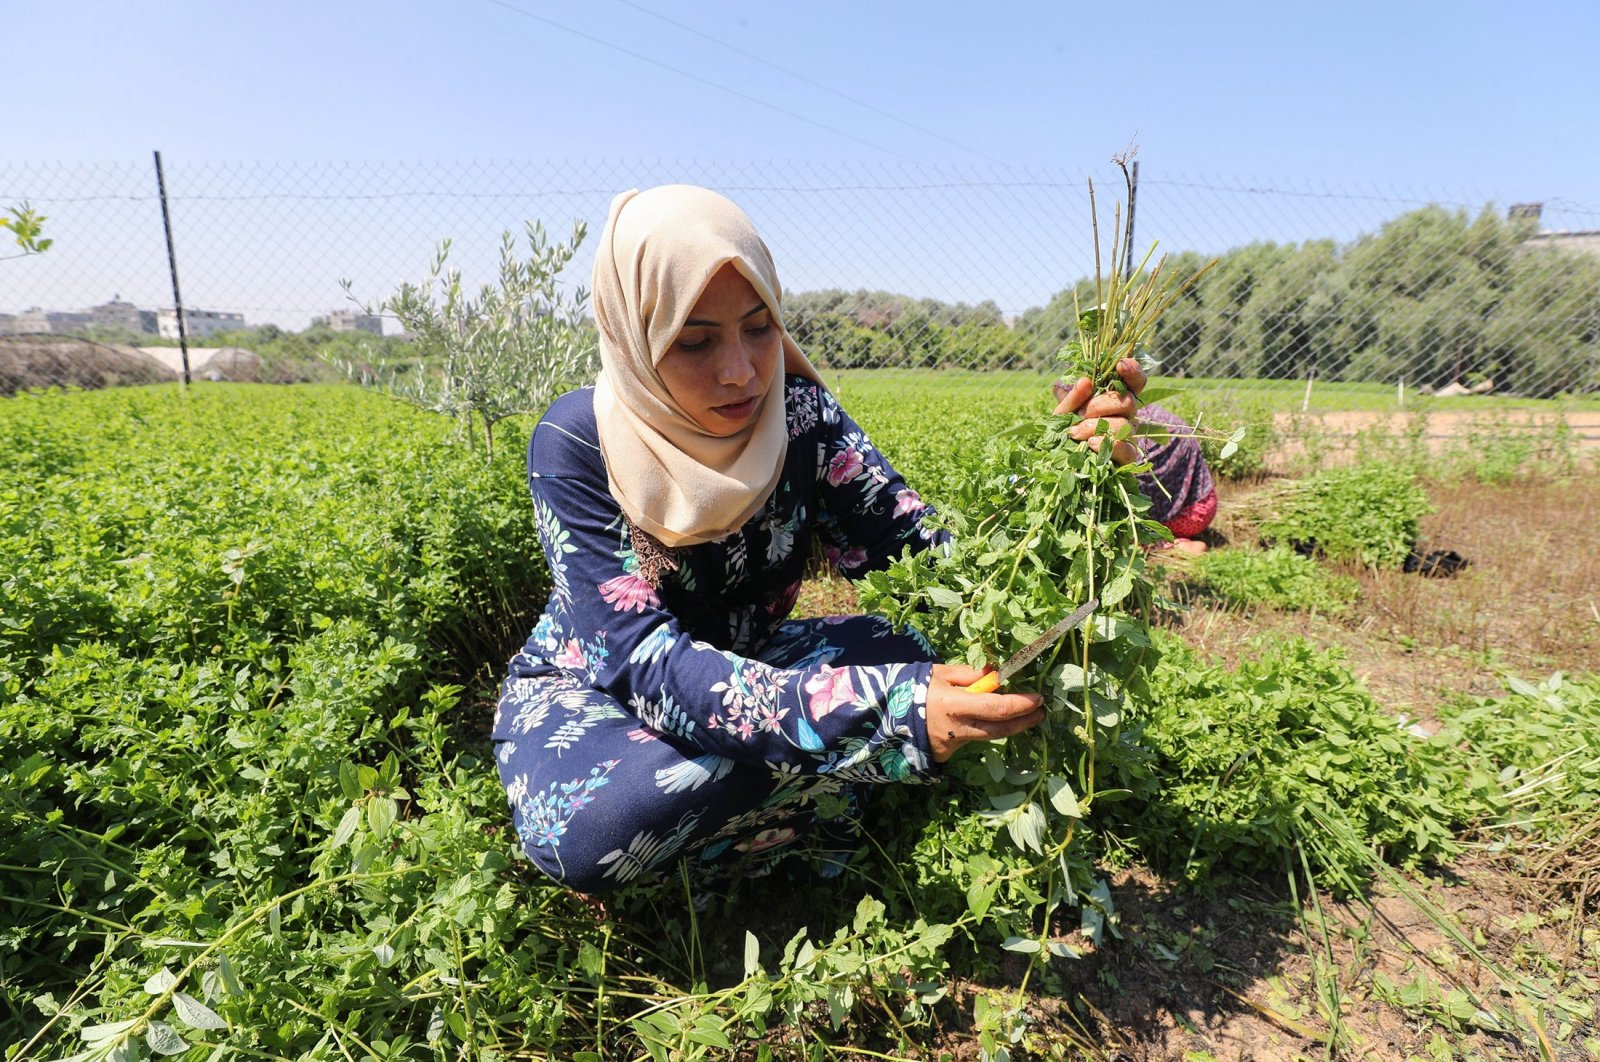 A Palestinian woman collects mint in her family land, in Beit Lahiya town, northern Gaza Strip, July 28, 2021. (Reuters Photo)